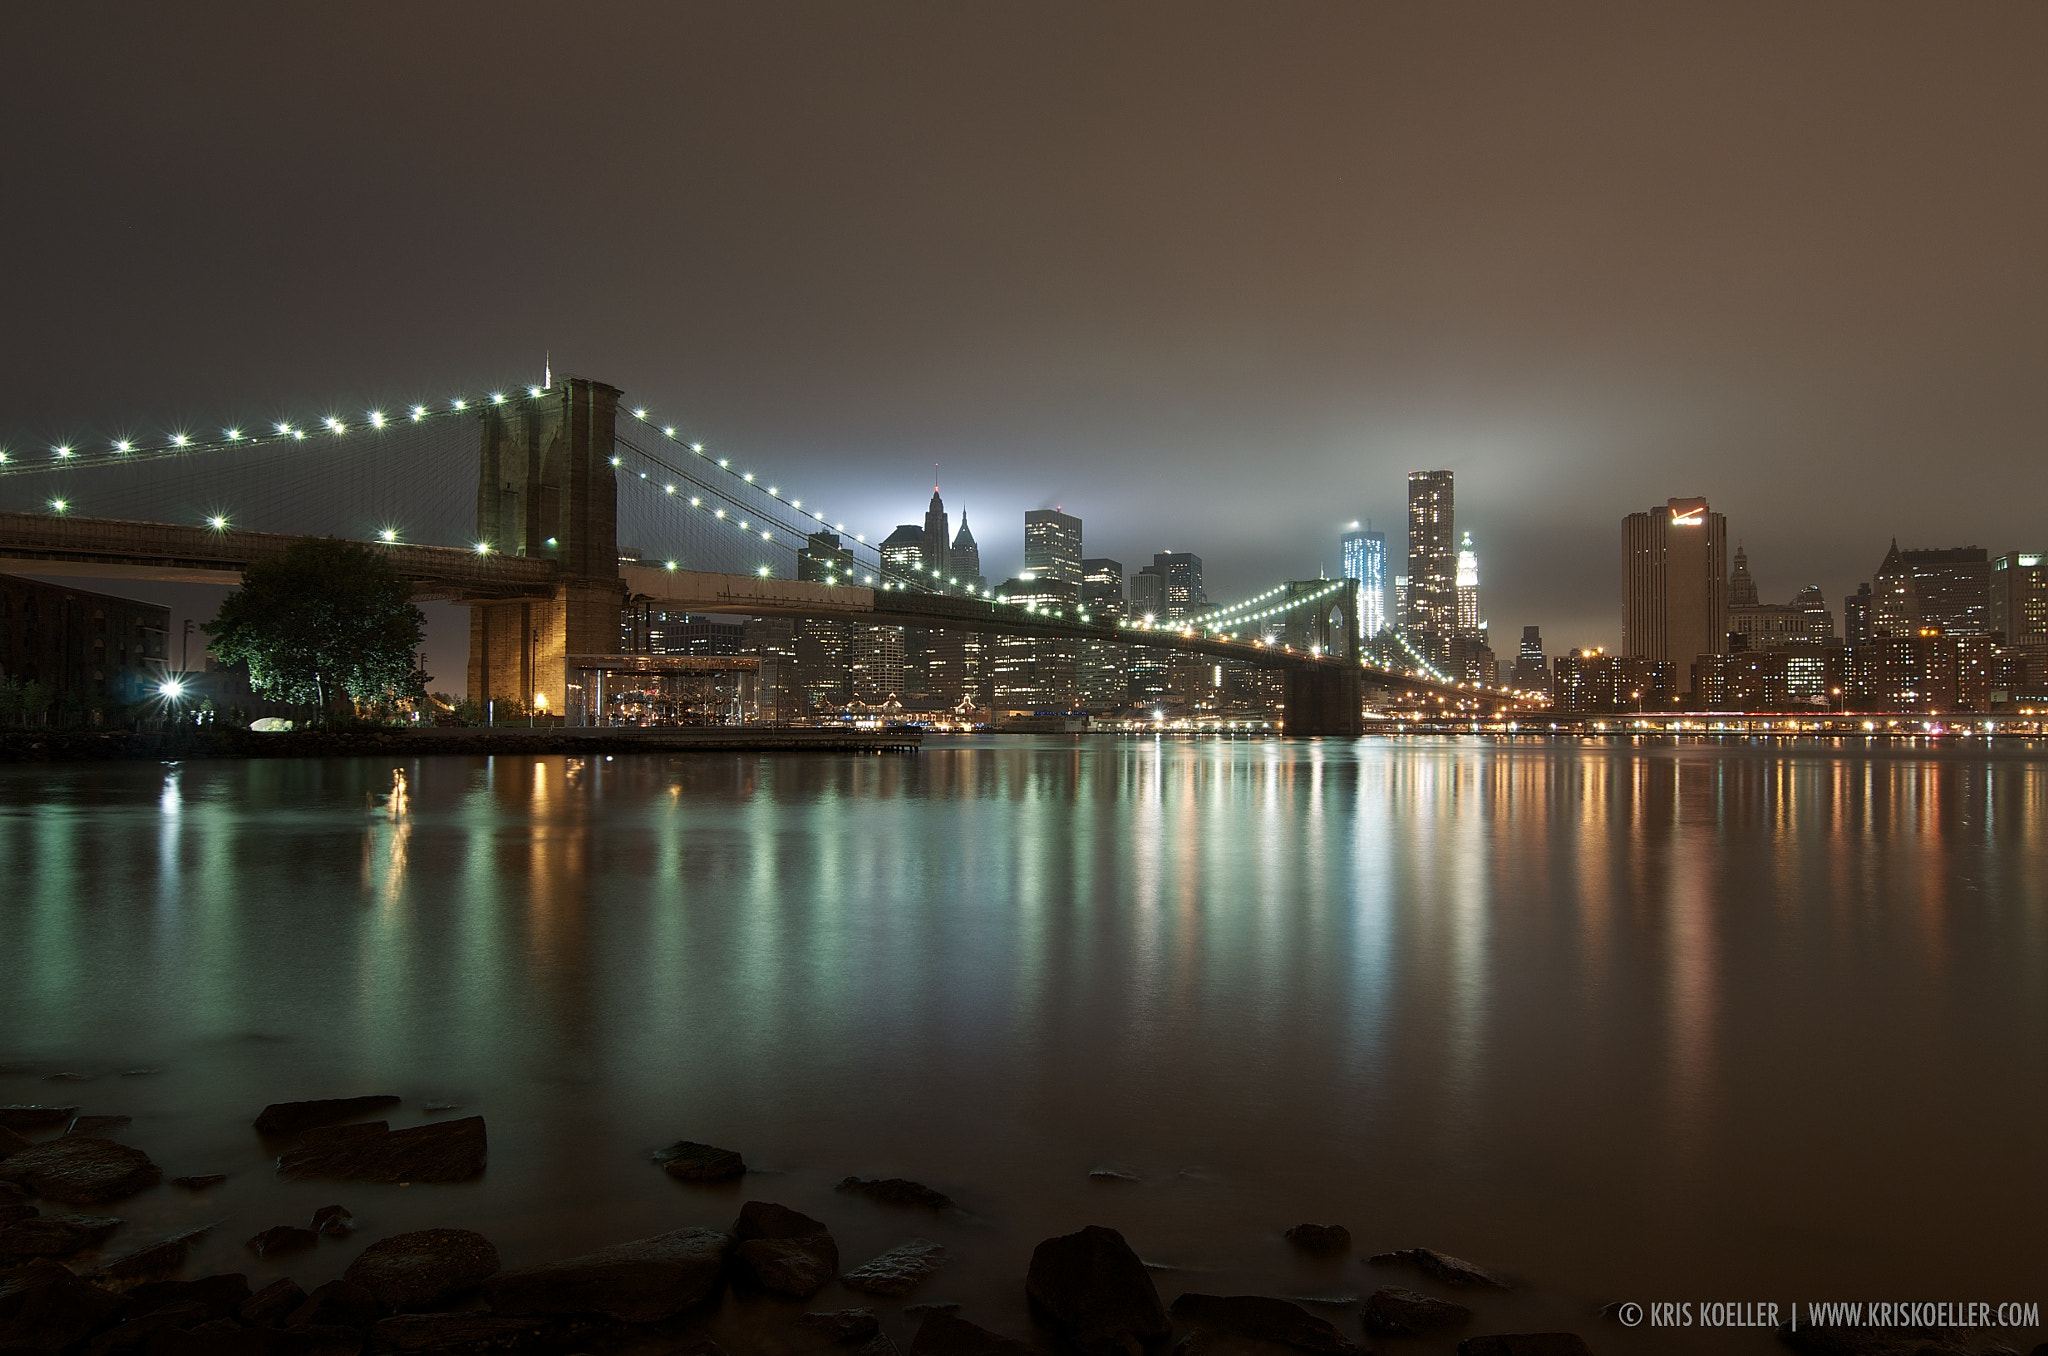 Photograph A Tribute in Light by Kris Koeller on 500px